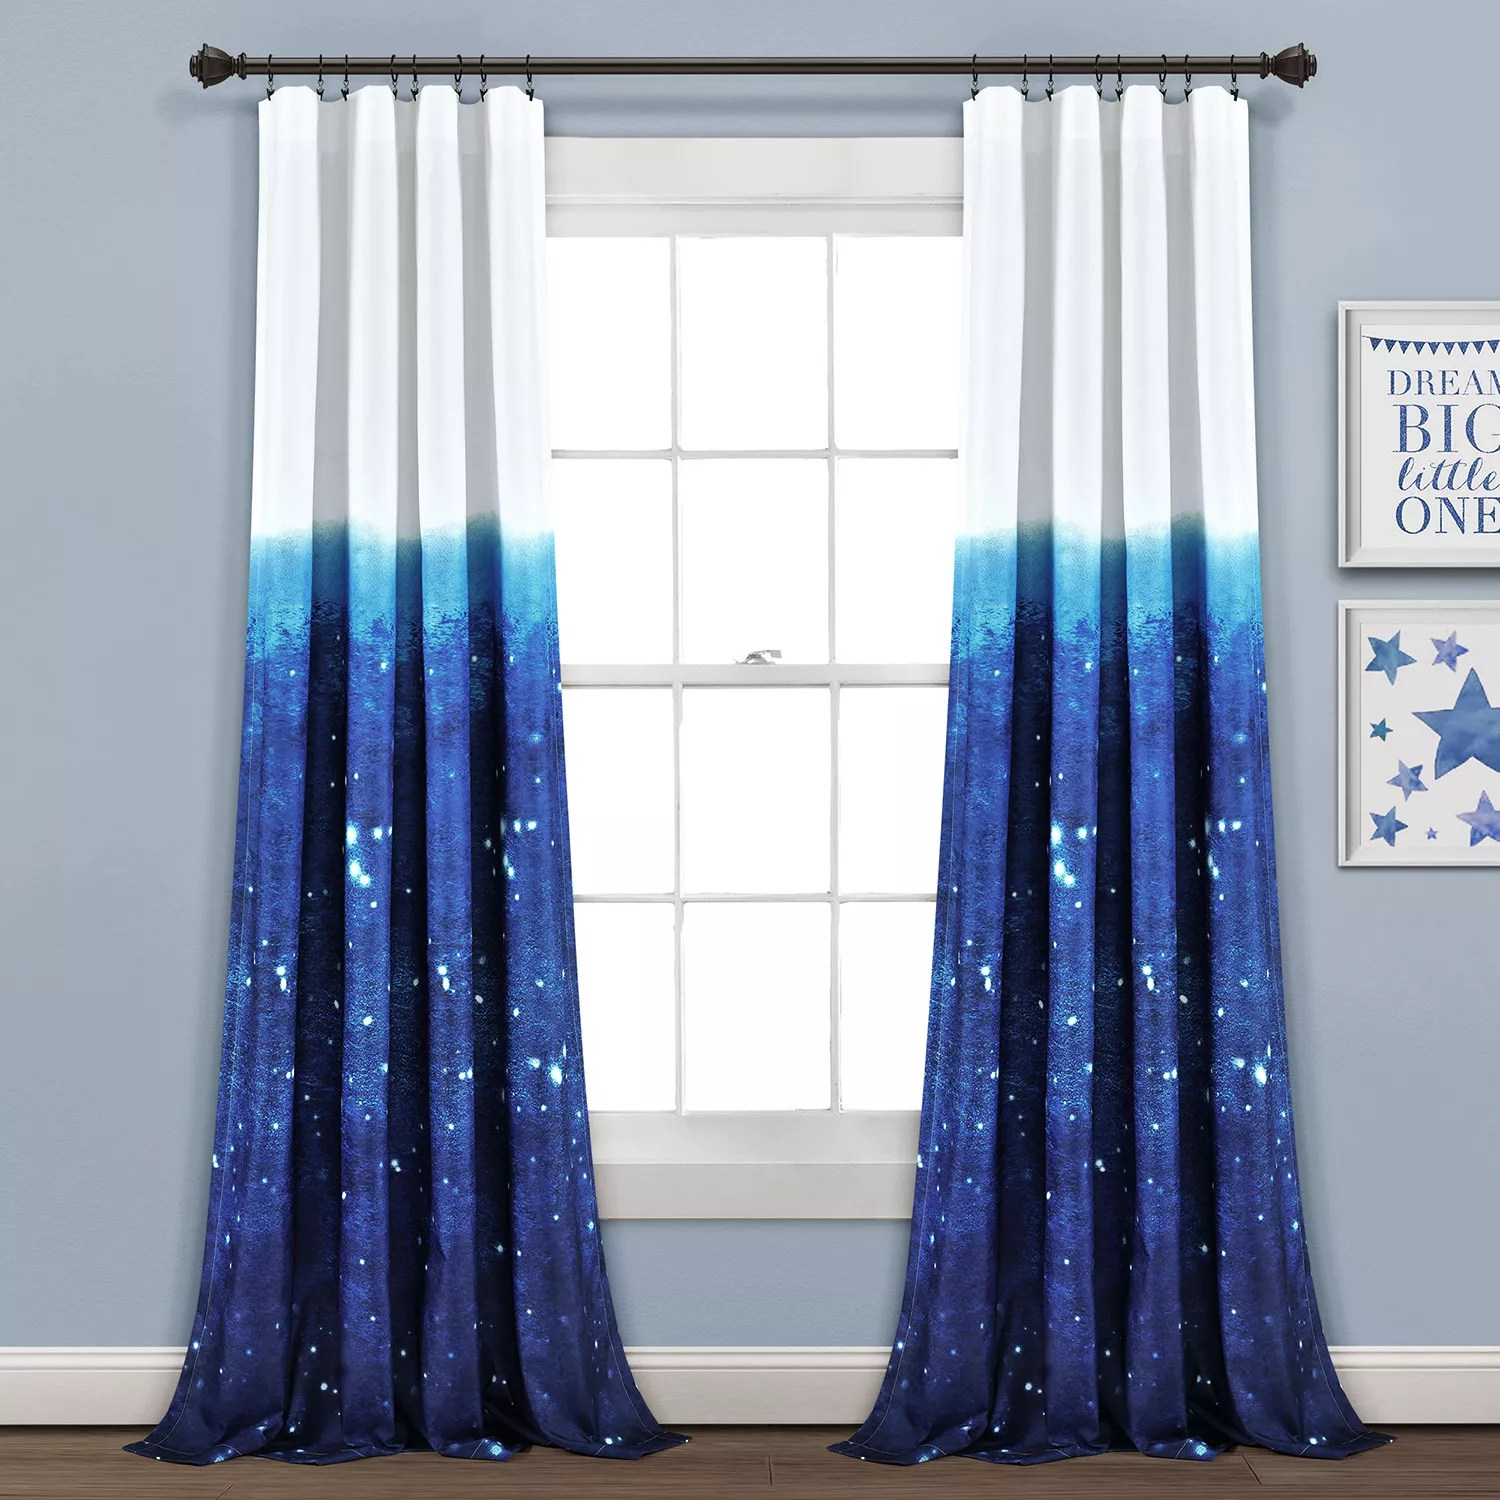 make a wish space star ombre window curtain panels 52 x 84 set